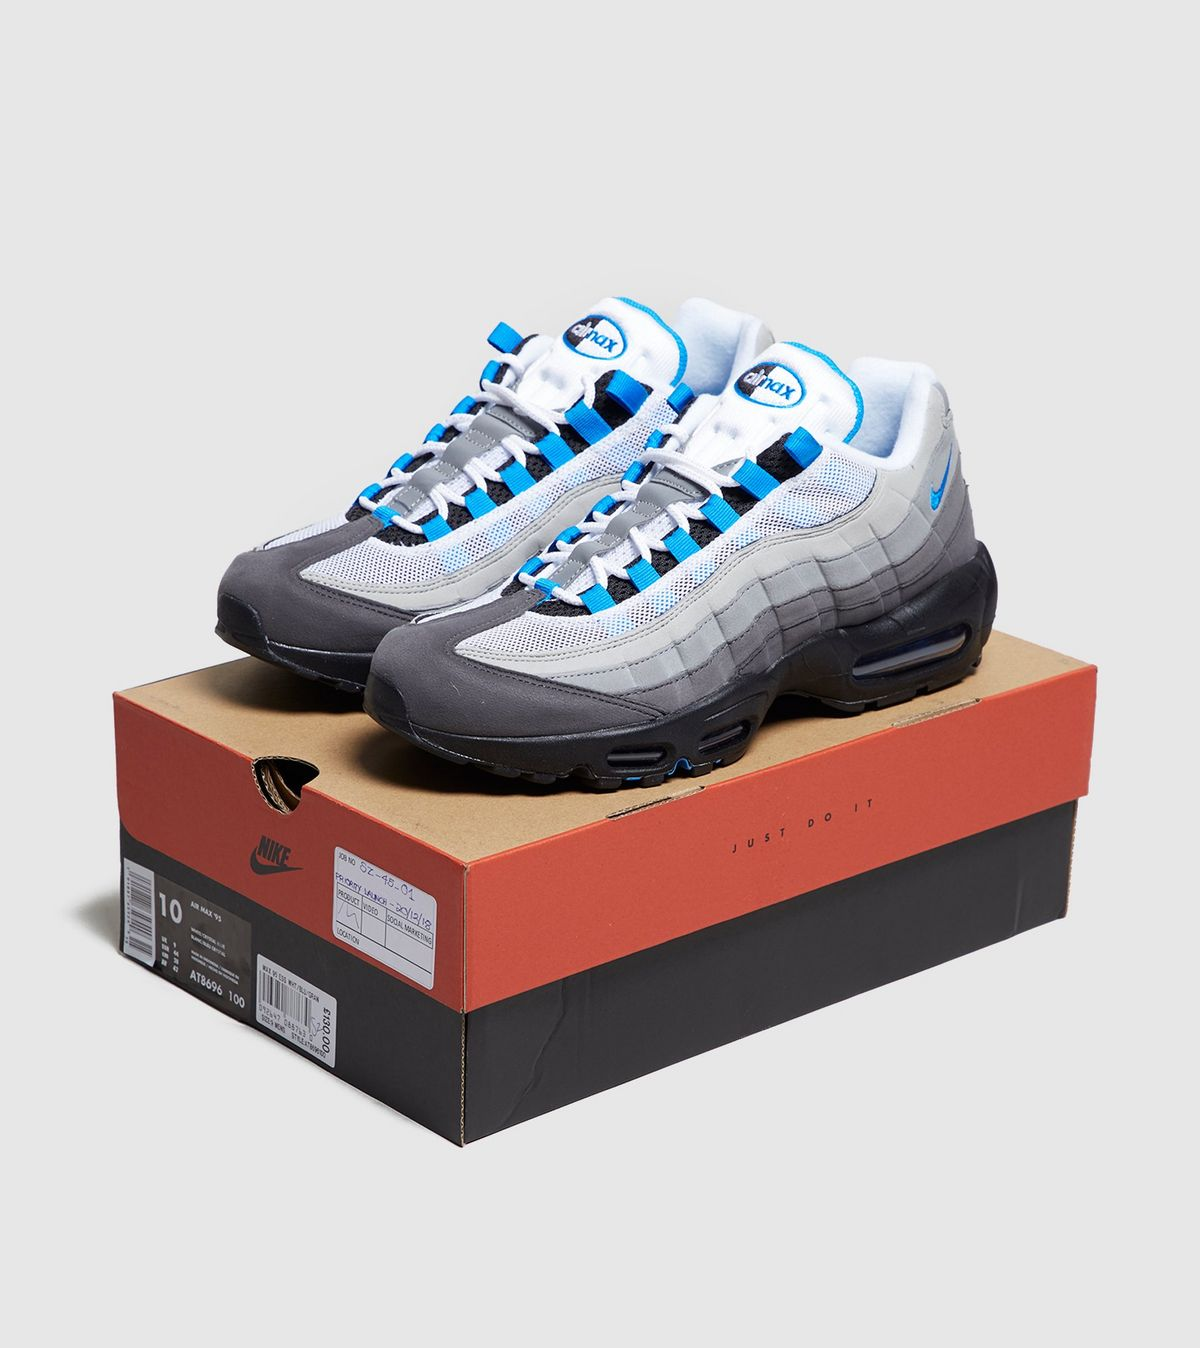 De Nike Air Max 95 Retro OG 'Crystal Blue' is nu